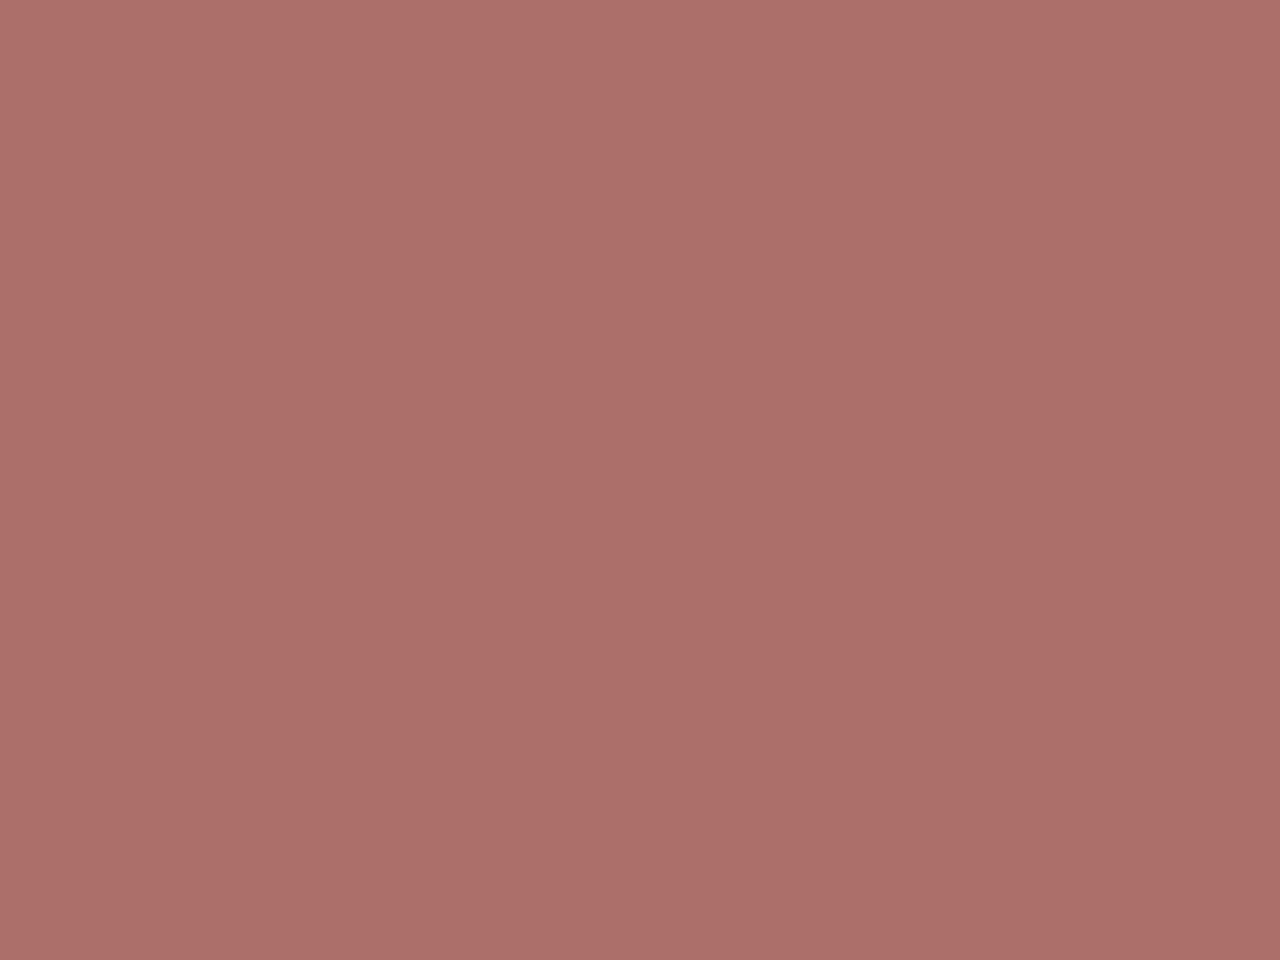 1280x960 Copper Penny Solid Color Background